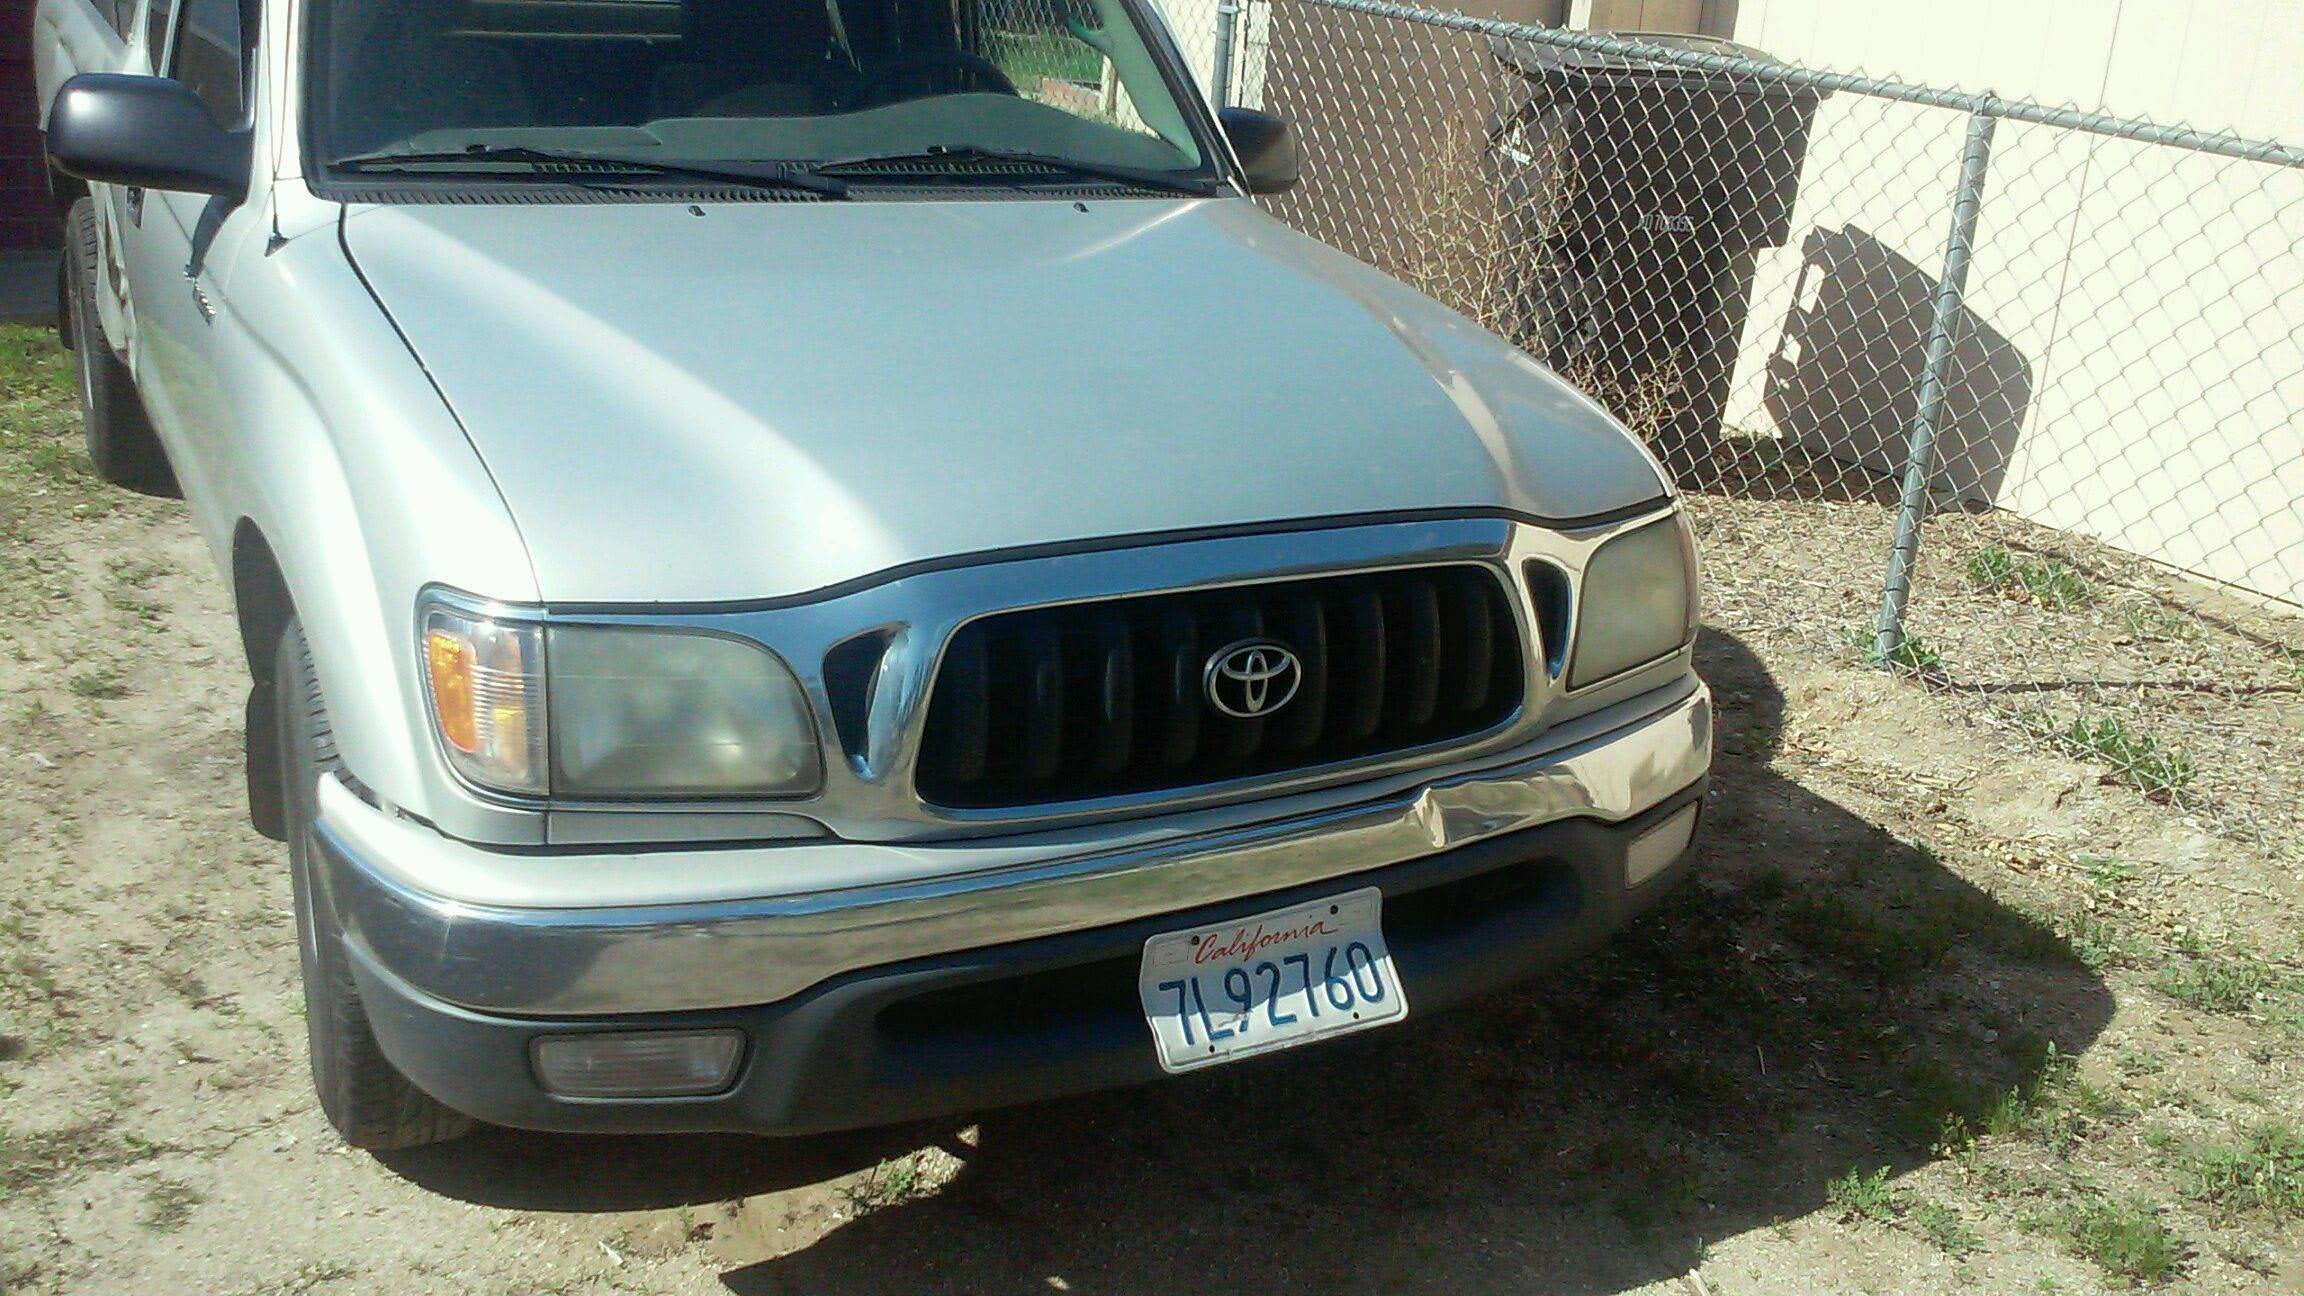 Junk 2003 Toyota Tacoma In Riverside, CA | @Junk my Car